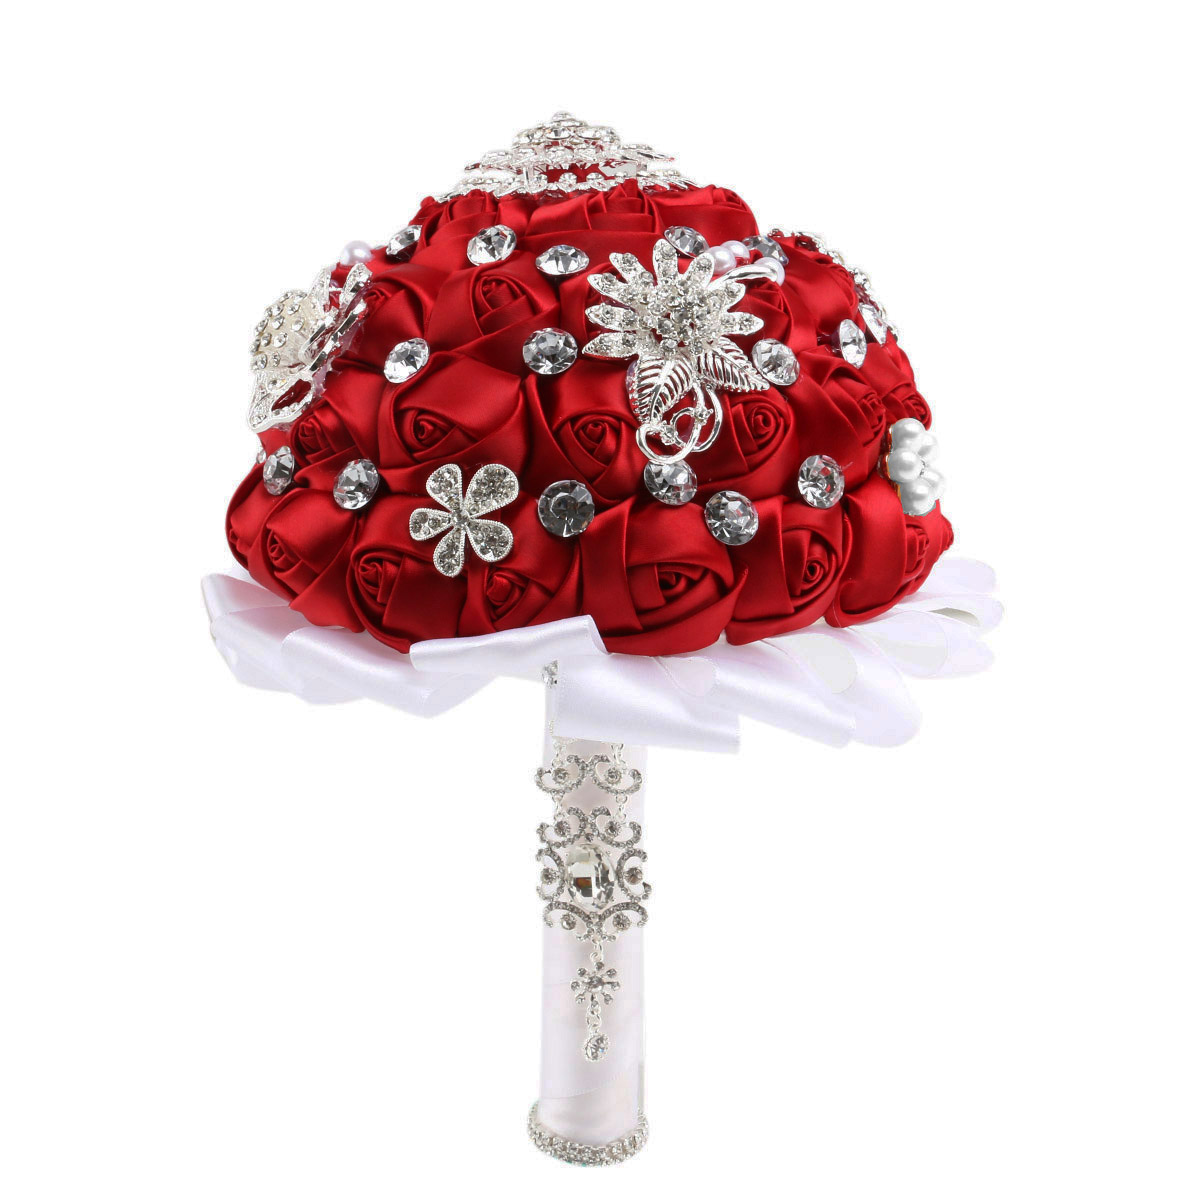 Handmade Crystal Pearl Rhinestone Decorated Bridal Hold Rose Flowers Wedding Bouquet Brooch (Red) charming crystal gold rose brooch